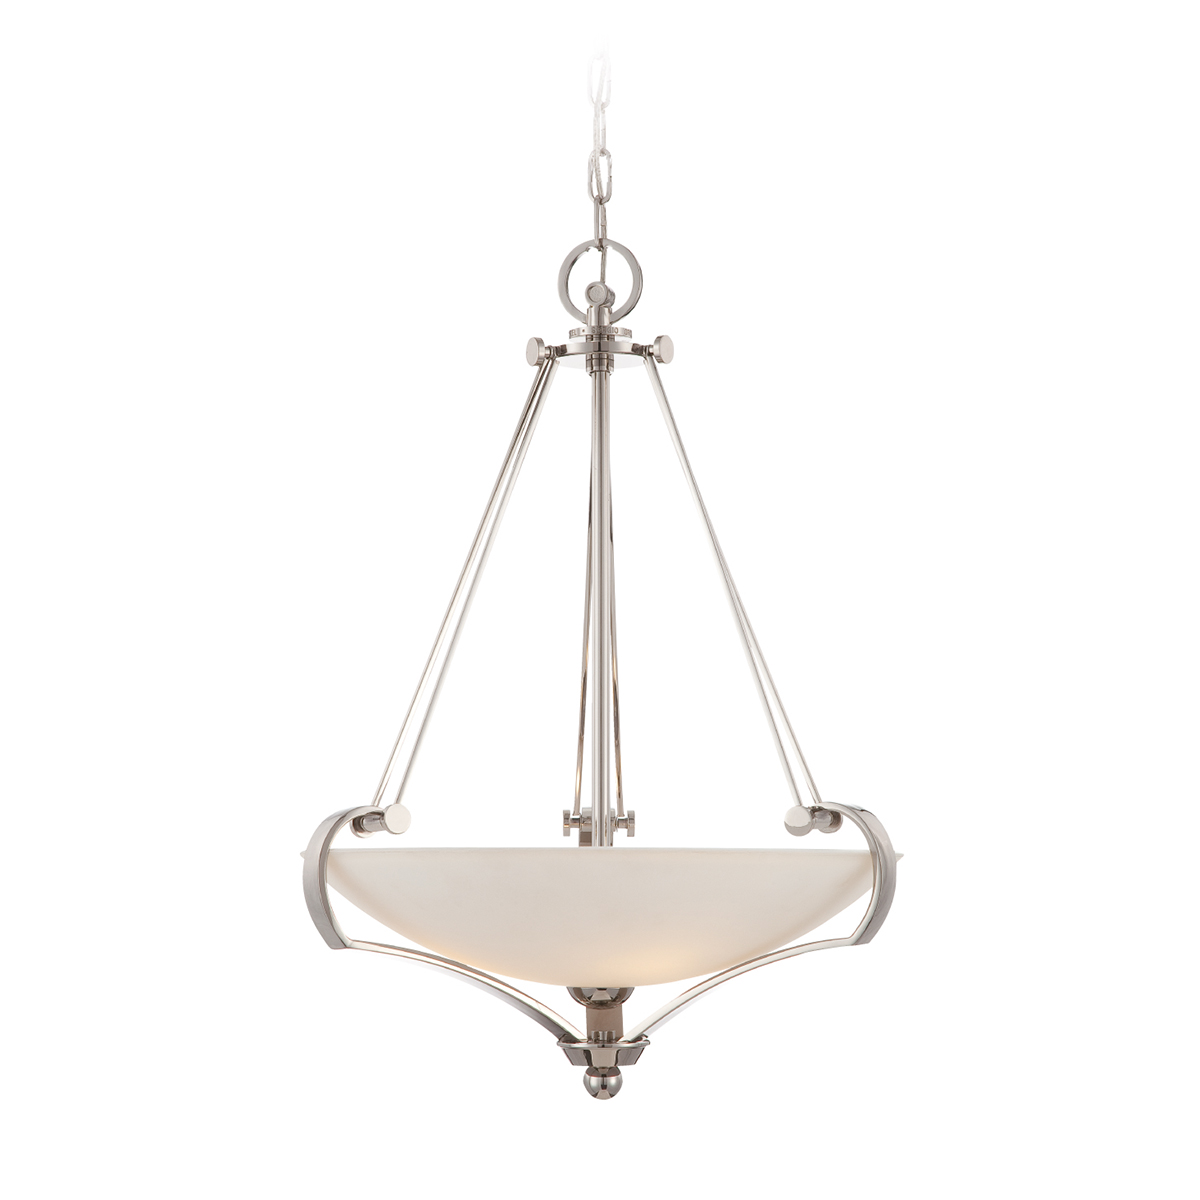 Uptown Sutton Place Pendant Light